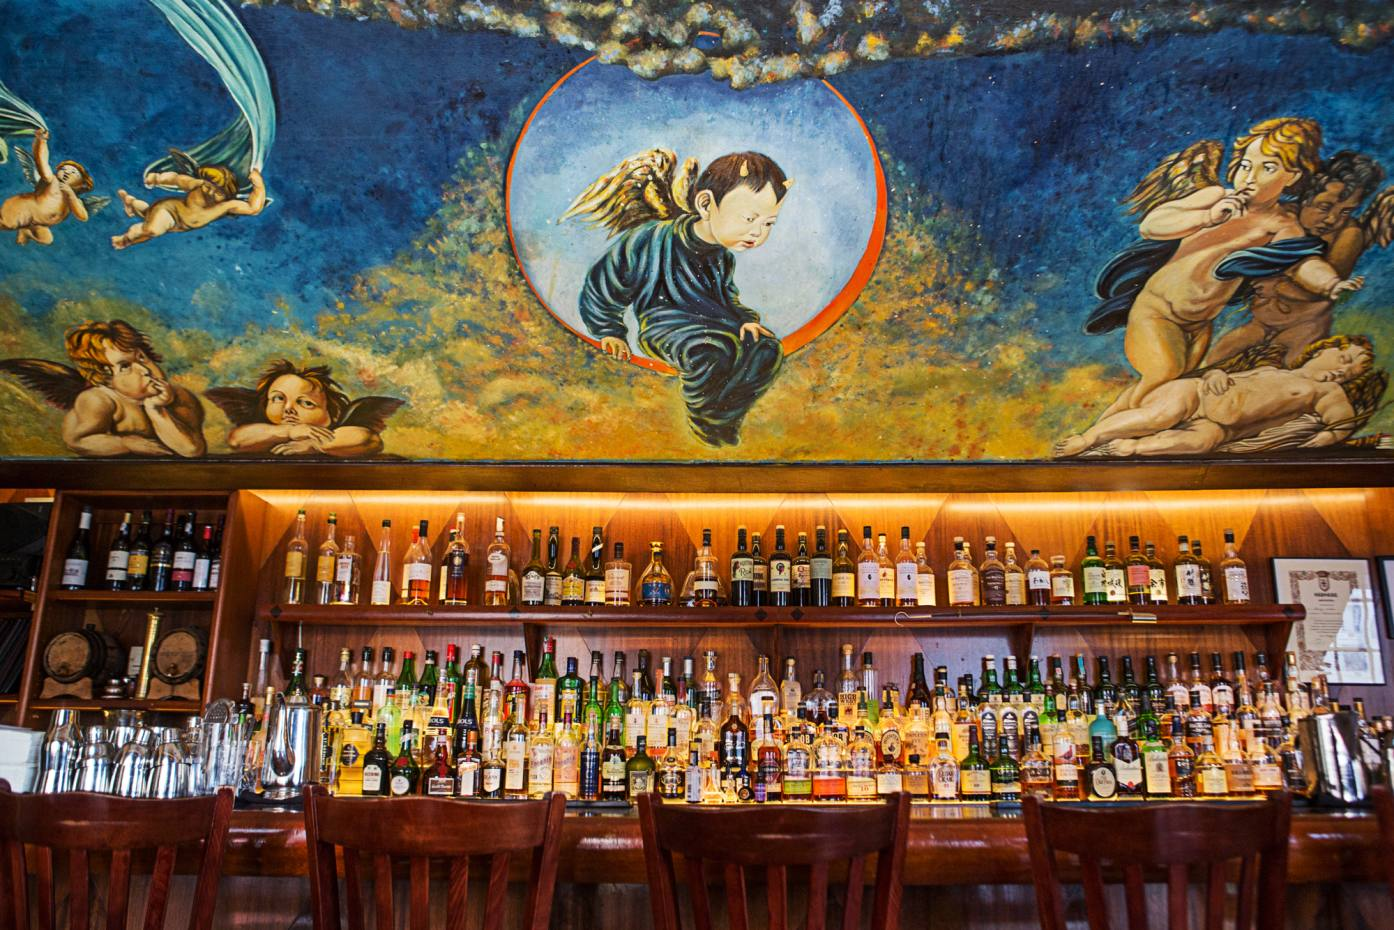 Geared towards Asian ingredients, Angel's Share's beatific bar is well-stocked with premium whisky, rice vodka and mirin